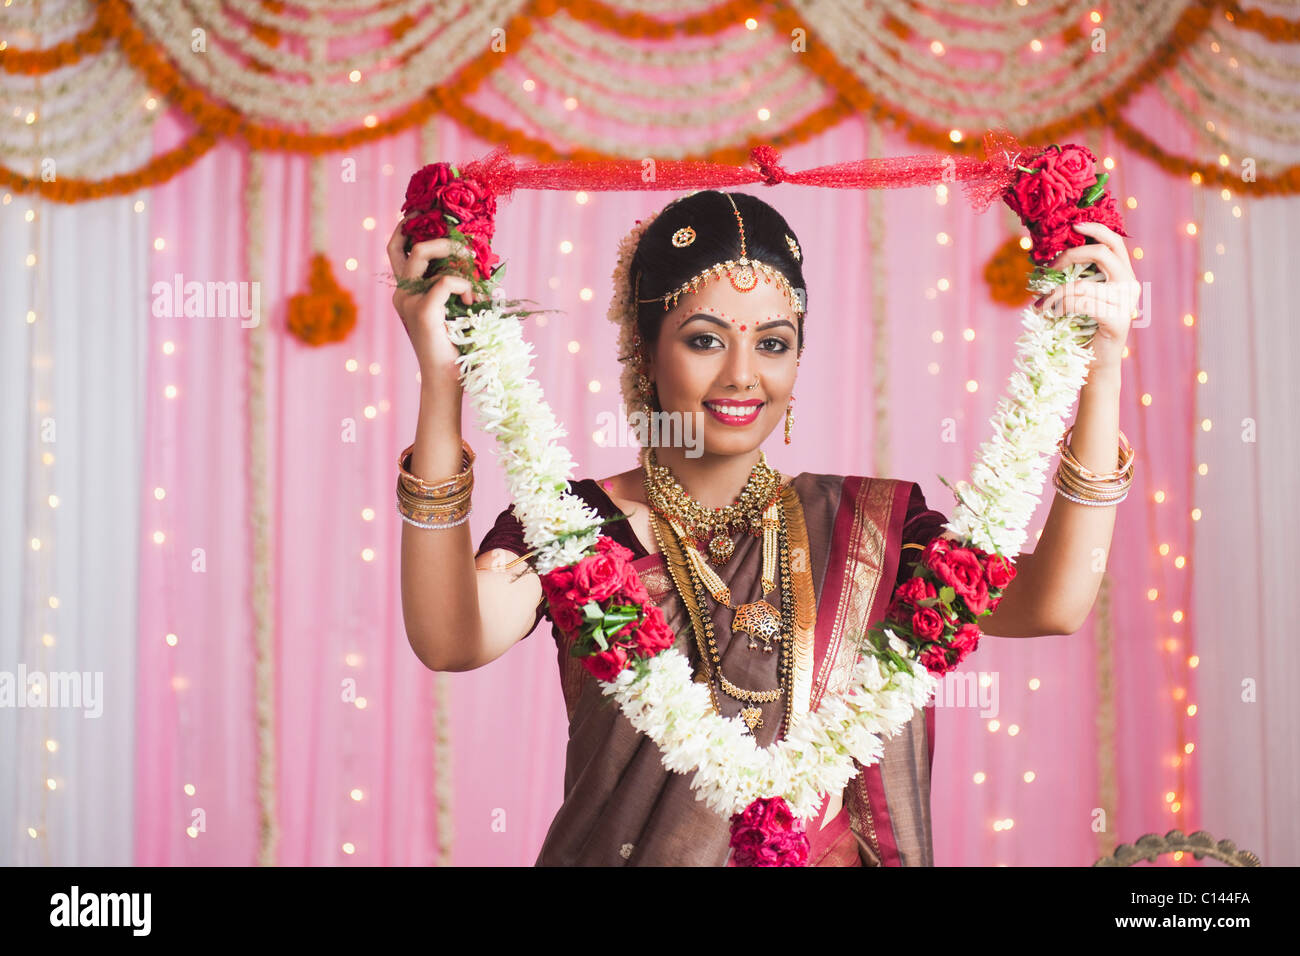 Portrait Of A Bride In Traditional South Indian Dress